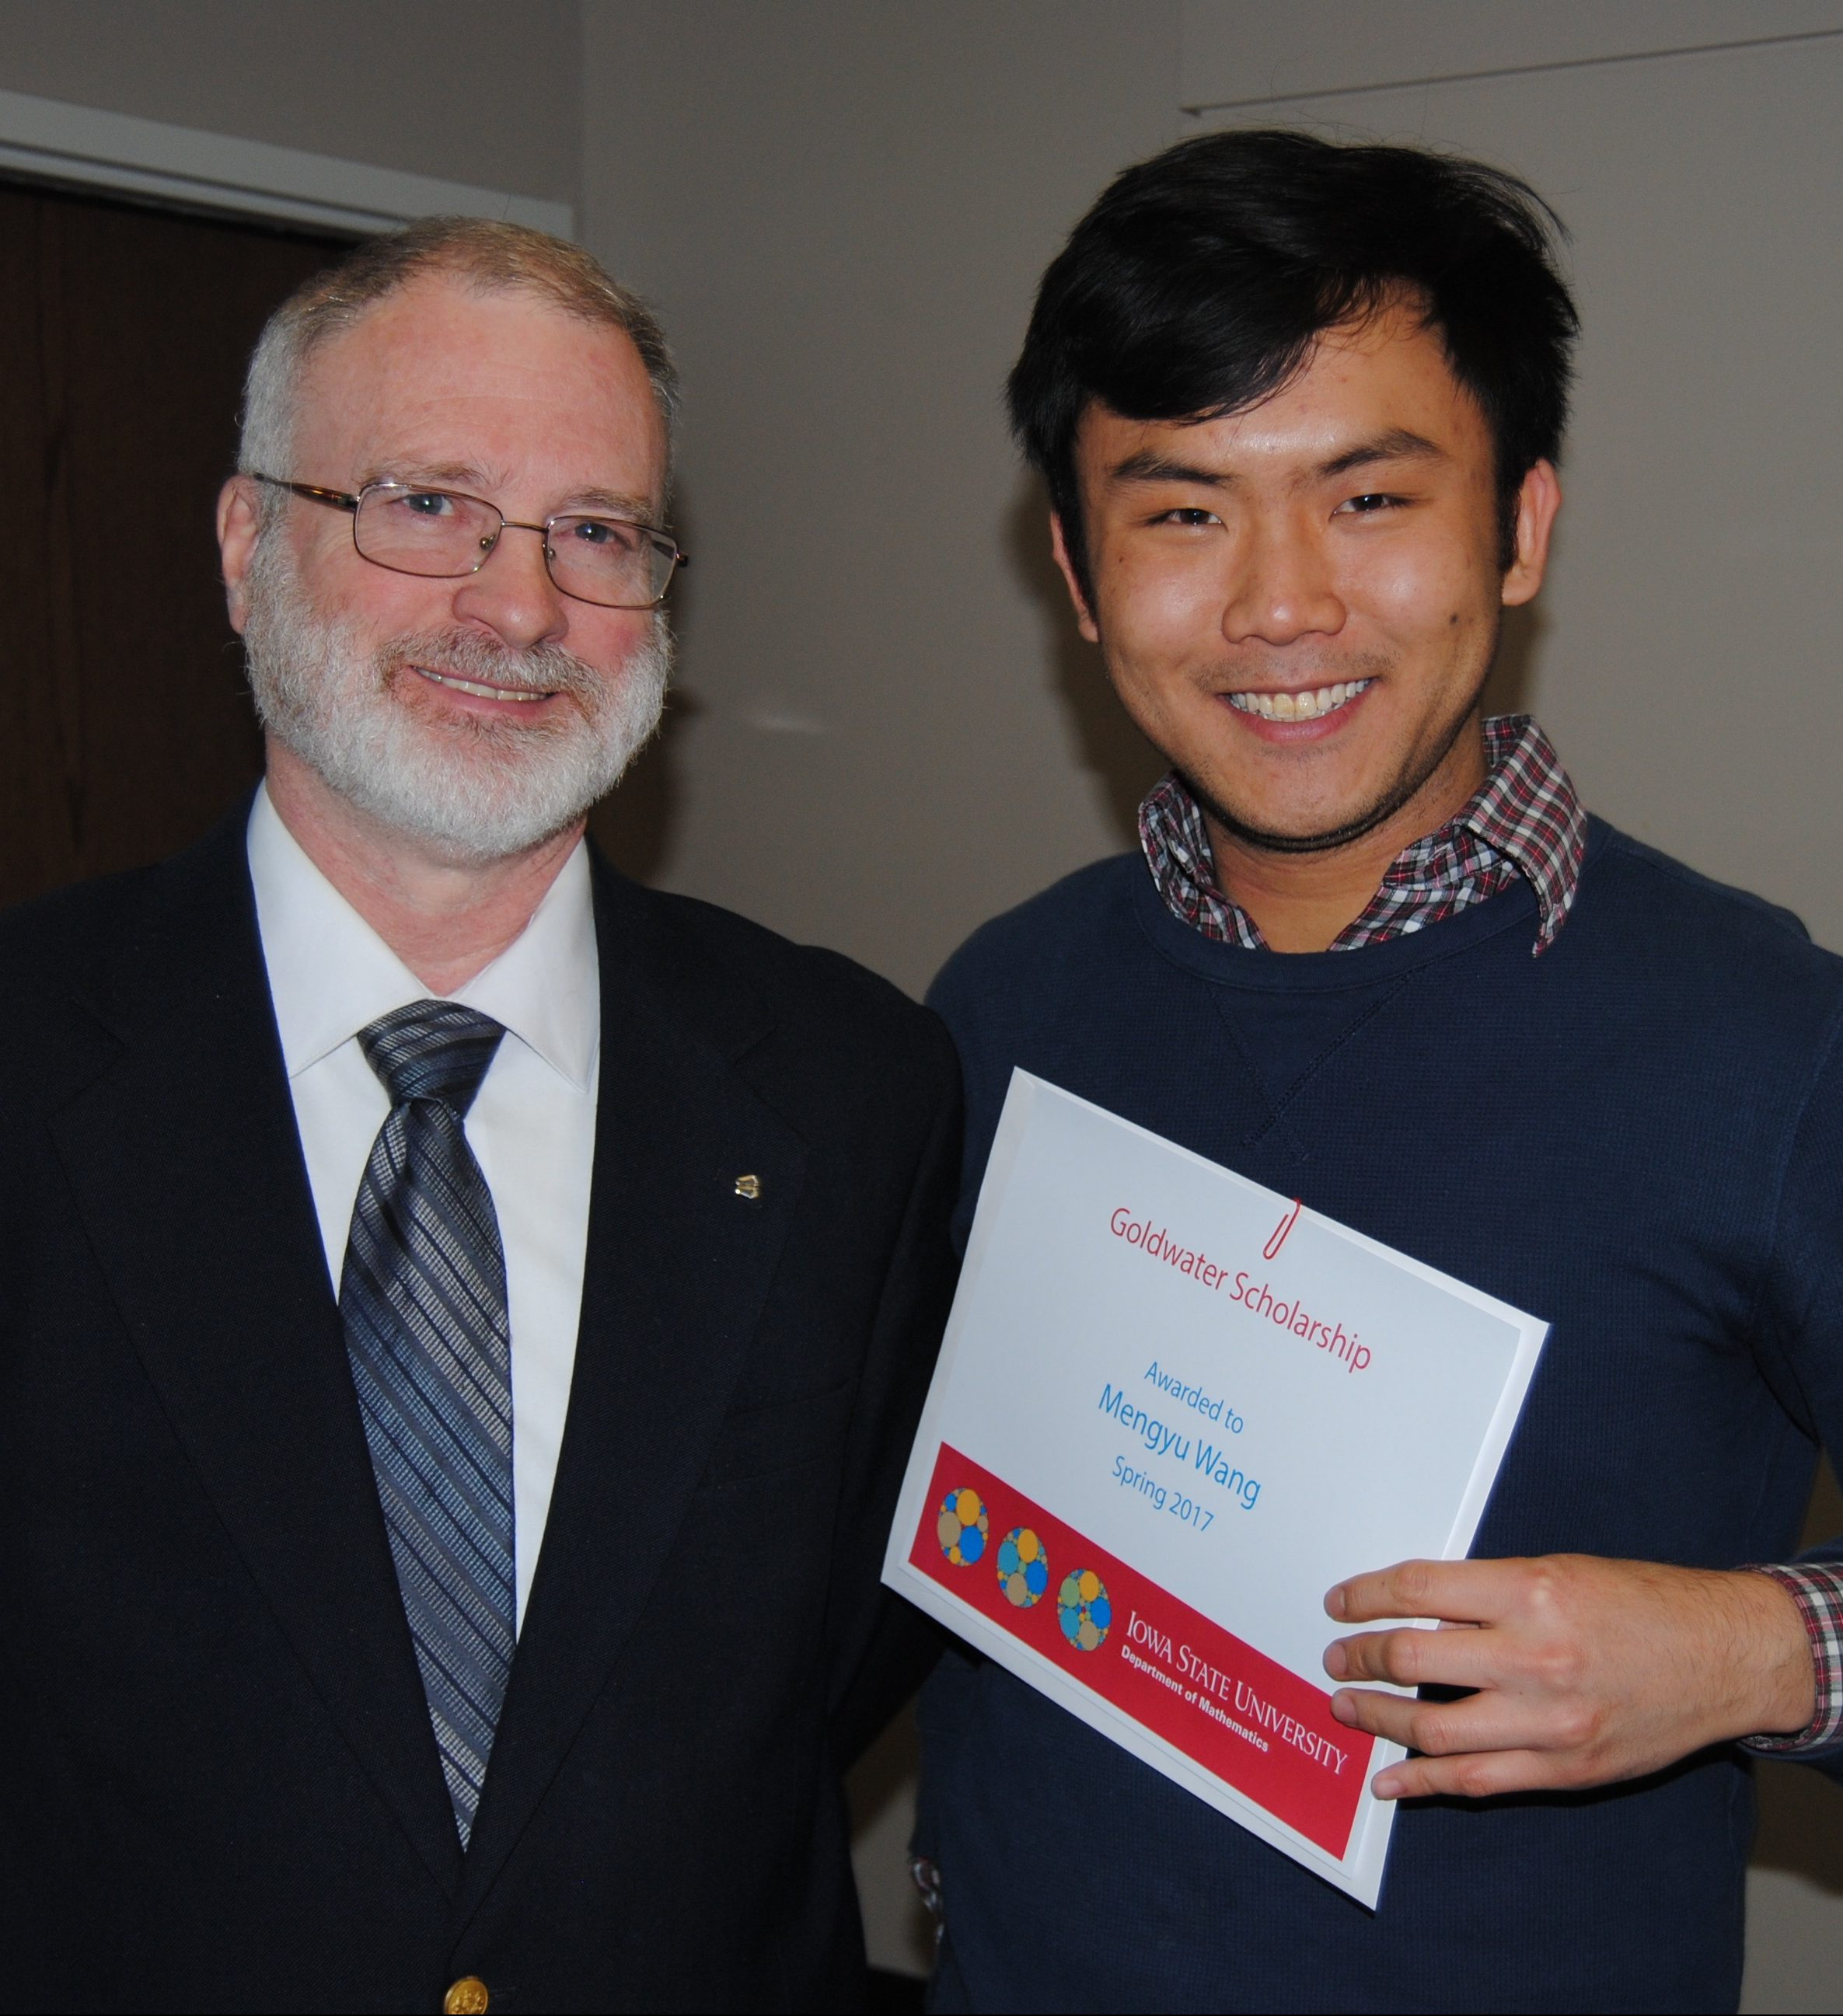 """Student Mengyu """"Allen"""" Wang receiving a certificate from James Wilson, director of undergraduate education in mathematics, in honor of receiving the Goldwater scholarship."""